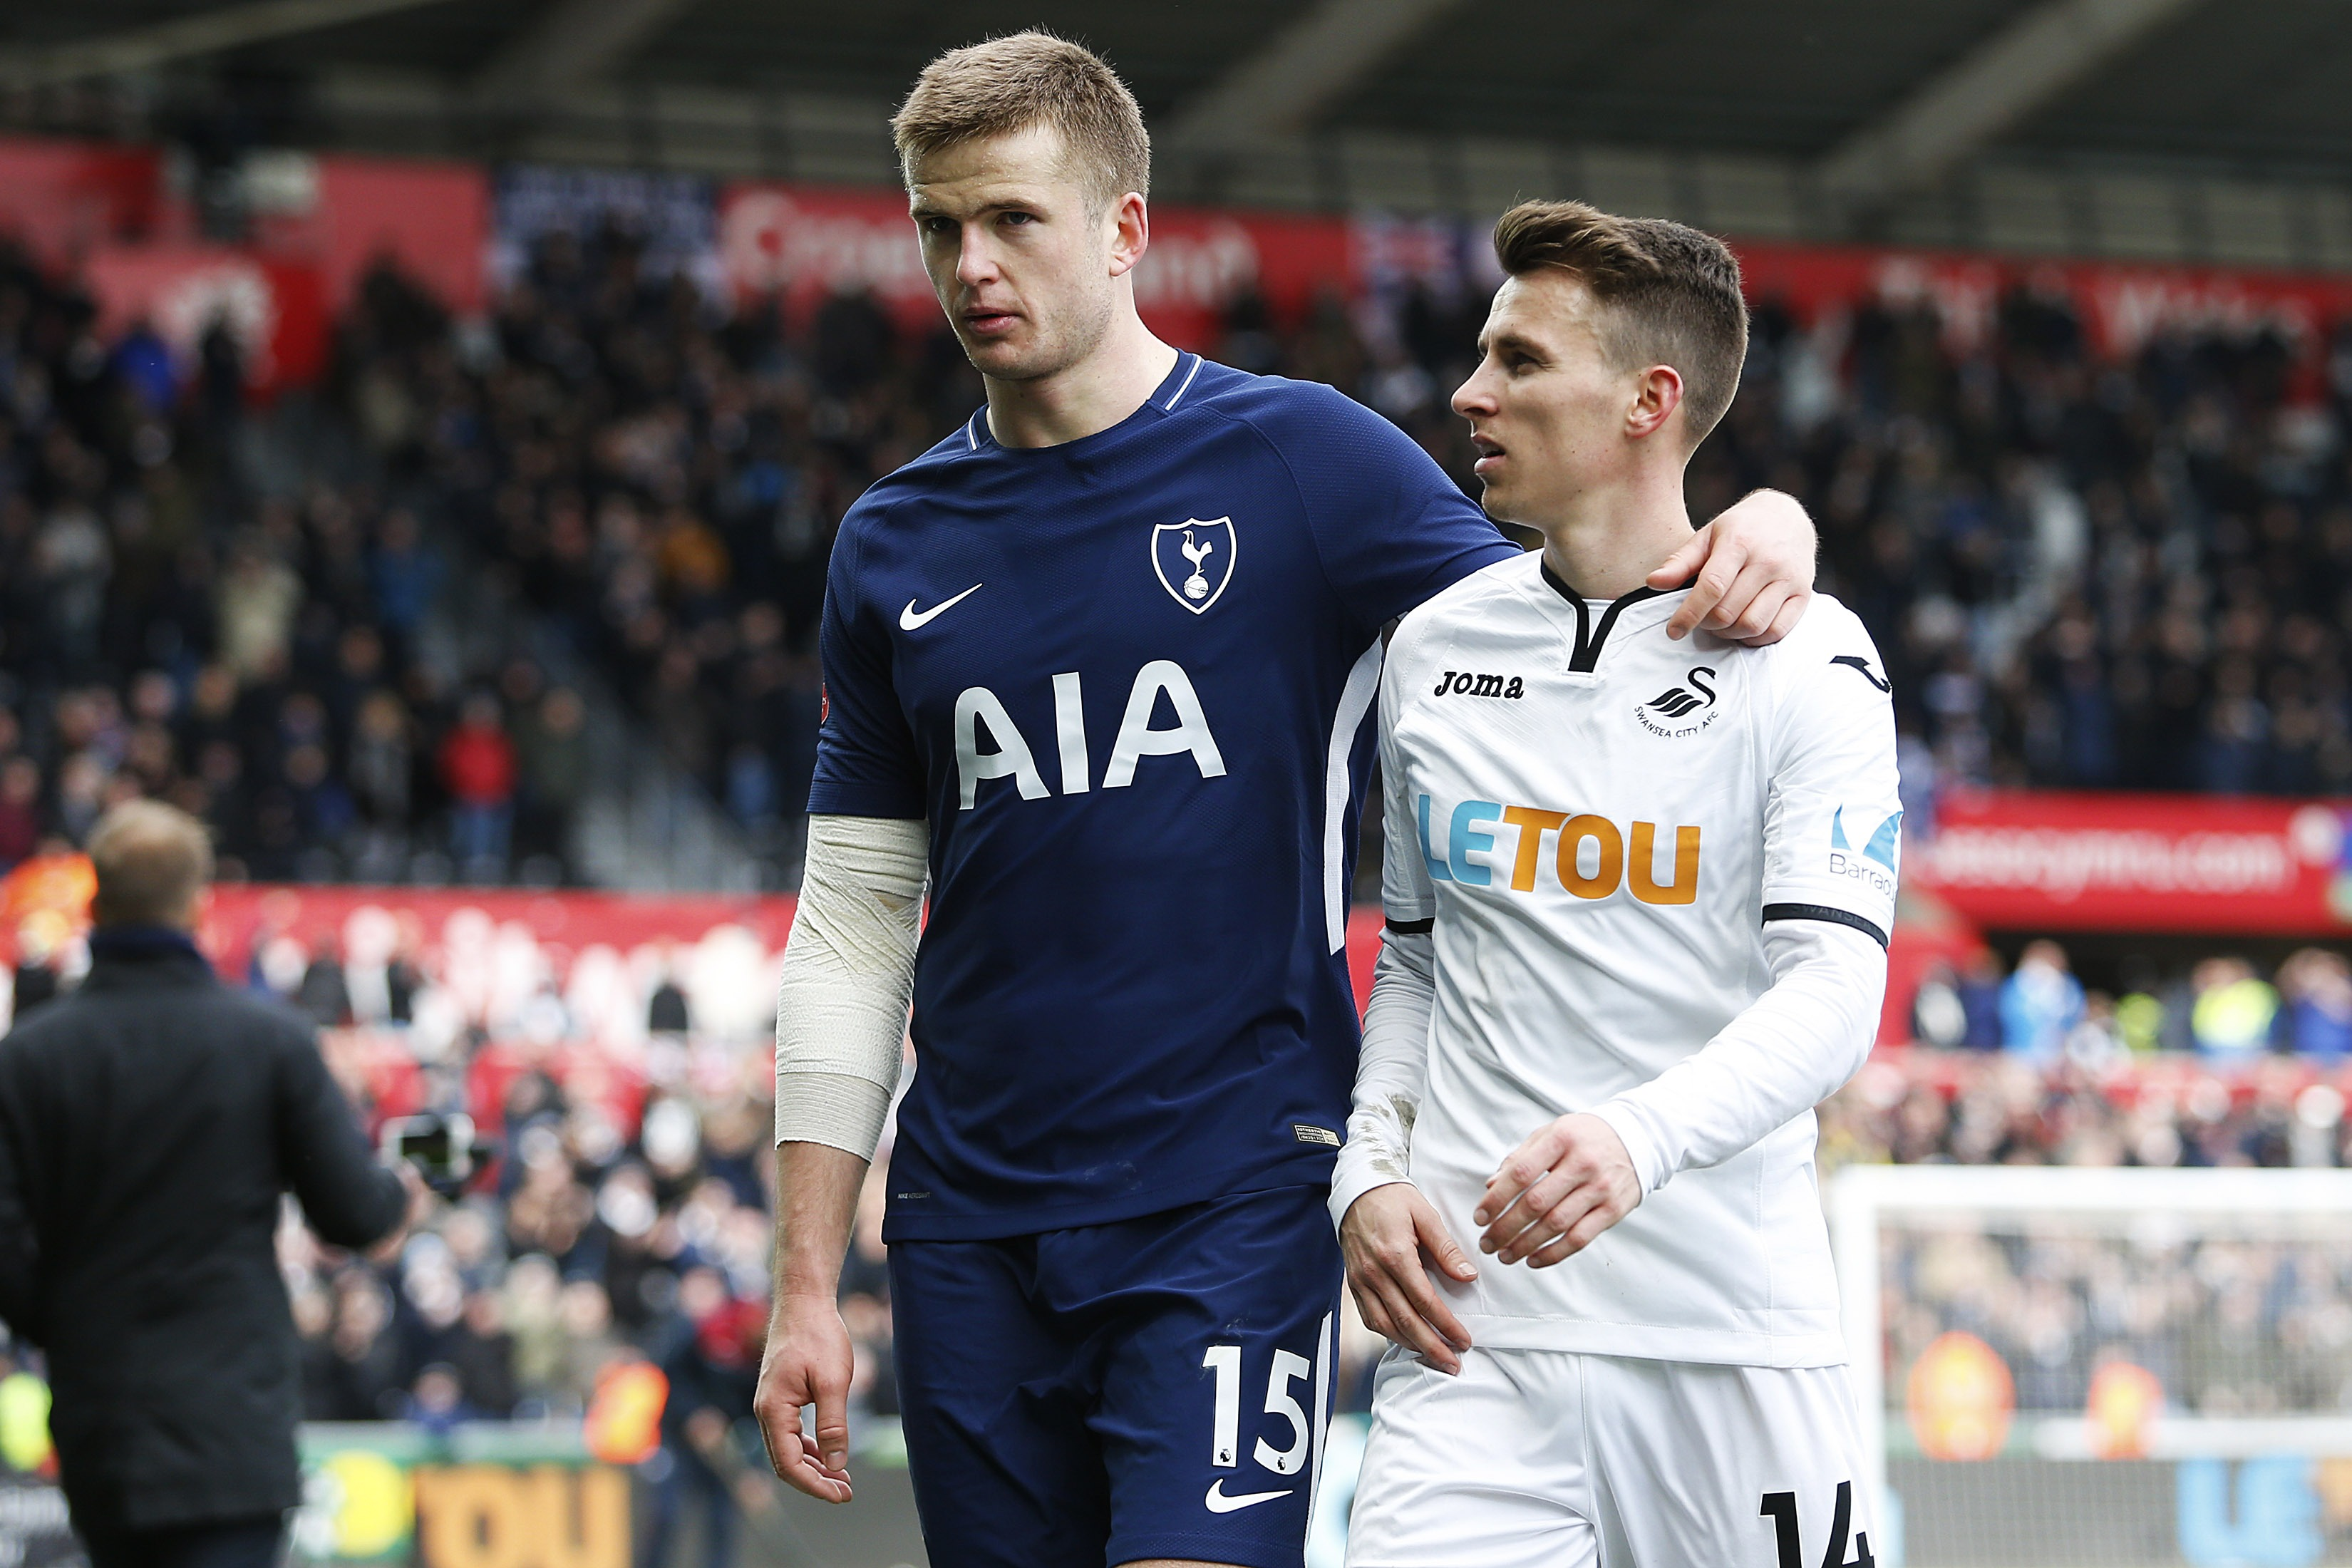 Swansea City v Tottenham Hotspur - Fly Emirates FA Cup Quarter Final